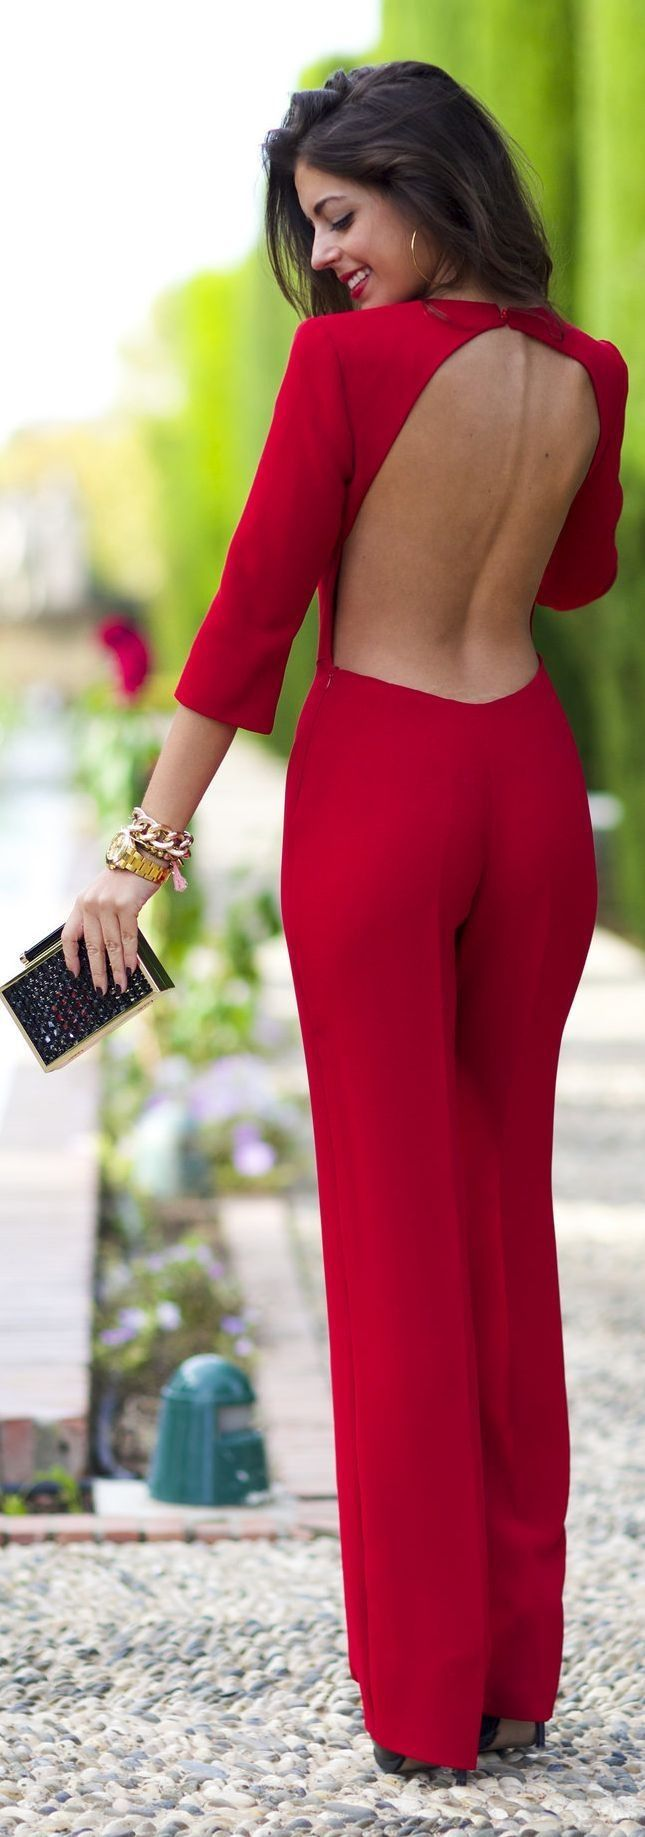 Red Backless Cocktail Jumpsuit | My style ♡ | Pinterest | Schöne ...